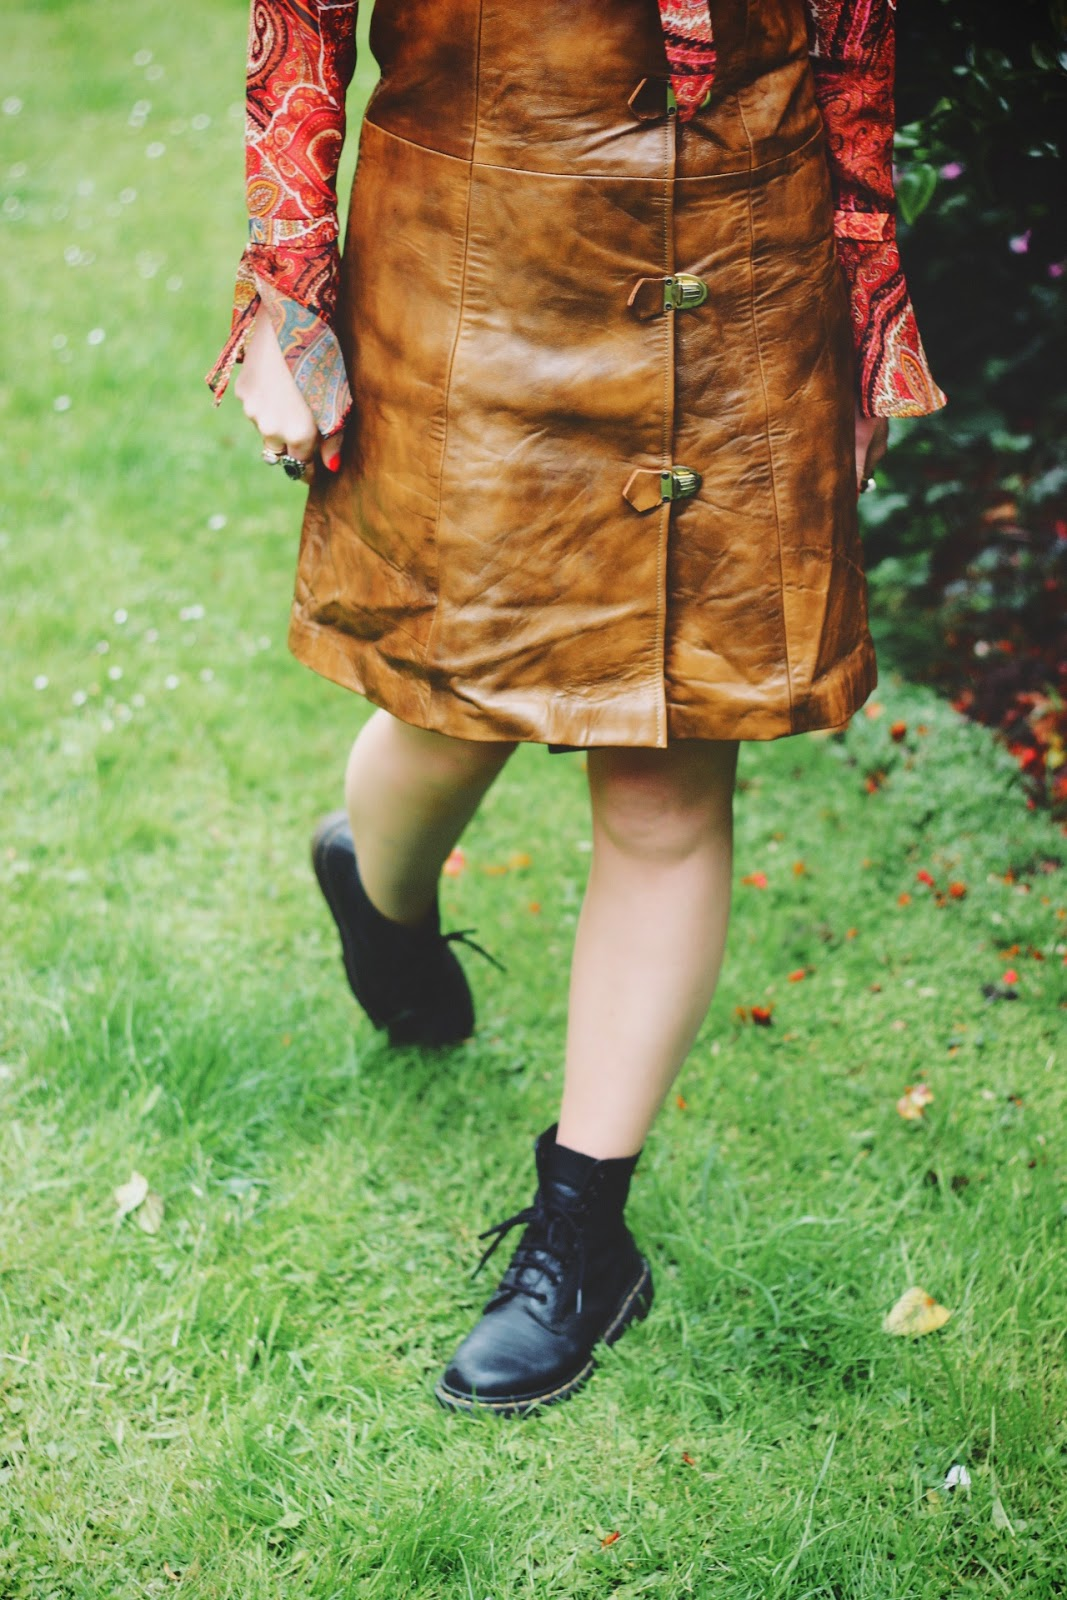 Beyond Retro Vintage Leather 70s Buckle Dress & Dr Martens Boots Festival